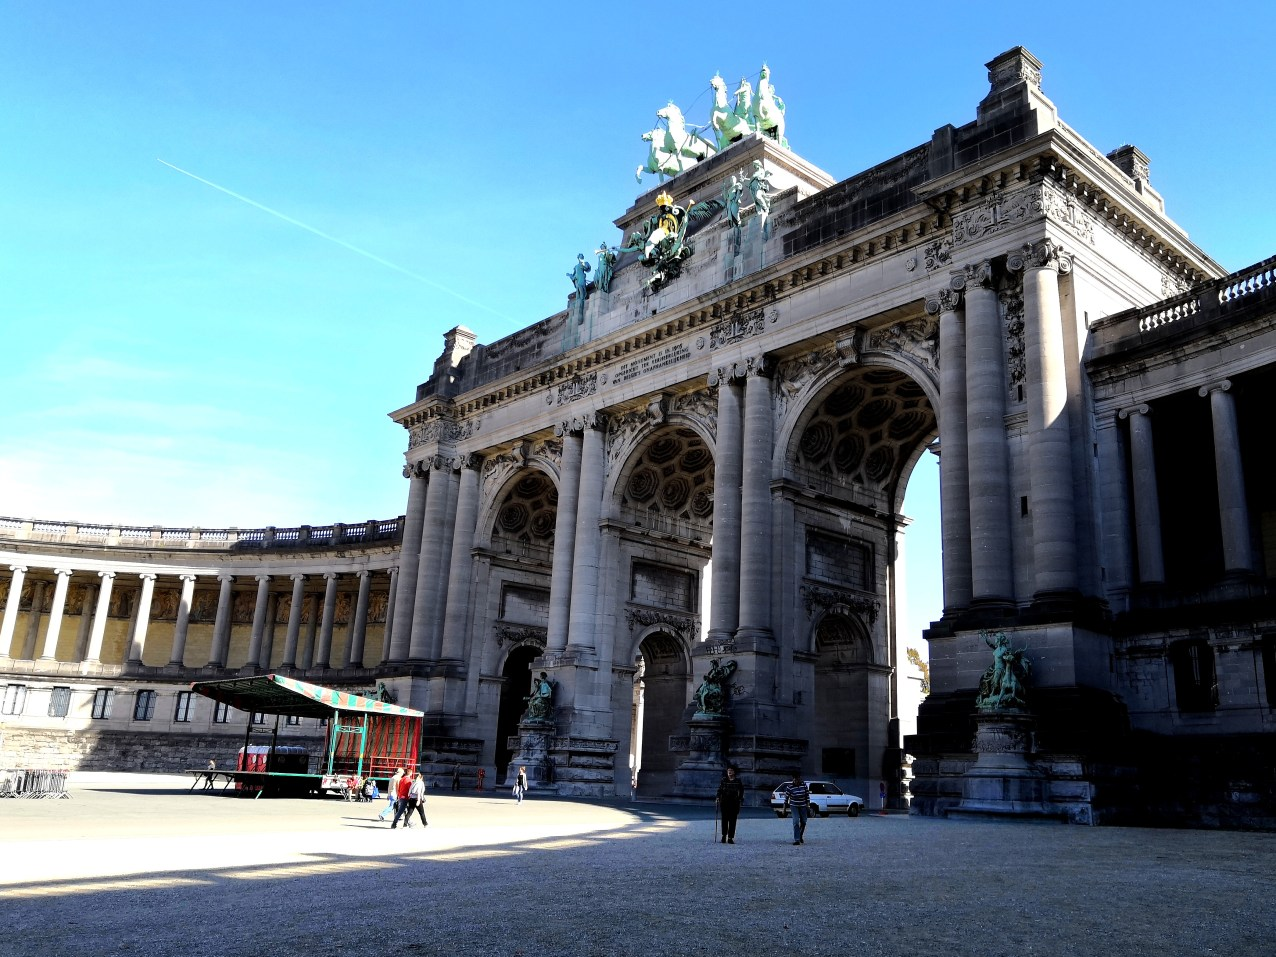 Brusel - Parc du Cinquantenaire - Royal Museum of the Armed Forces and of Military History